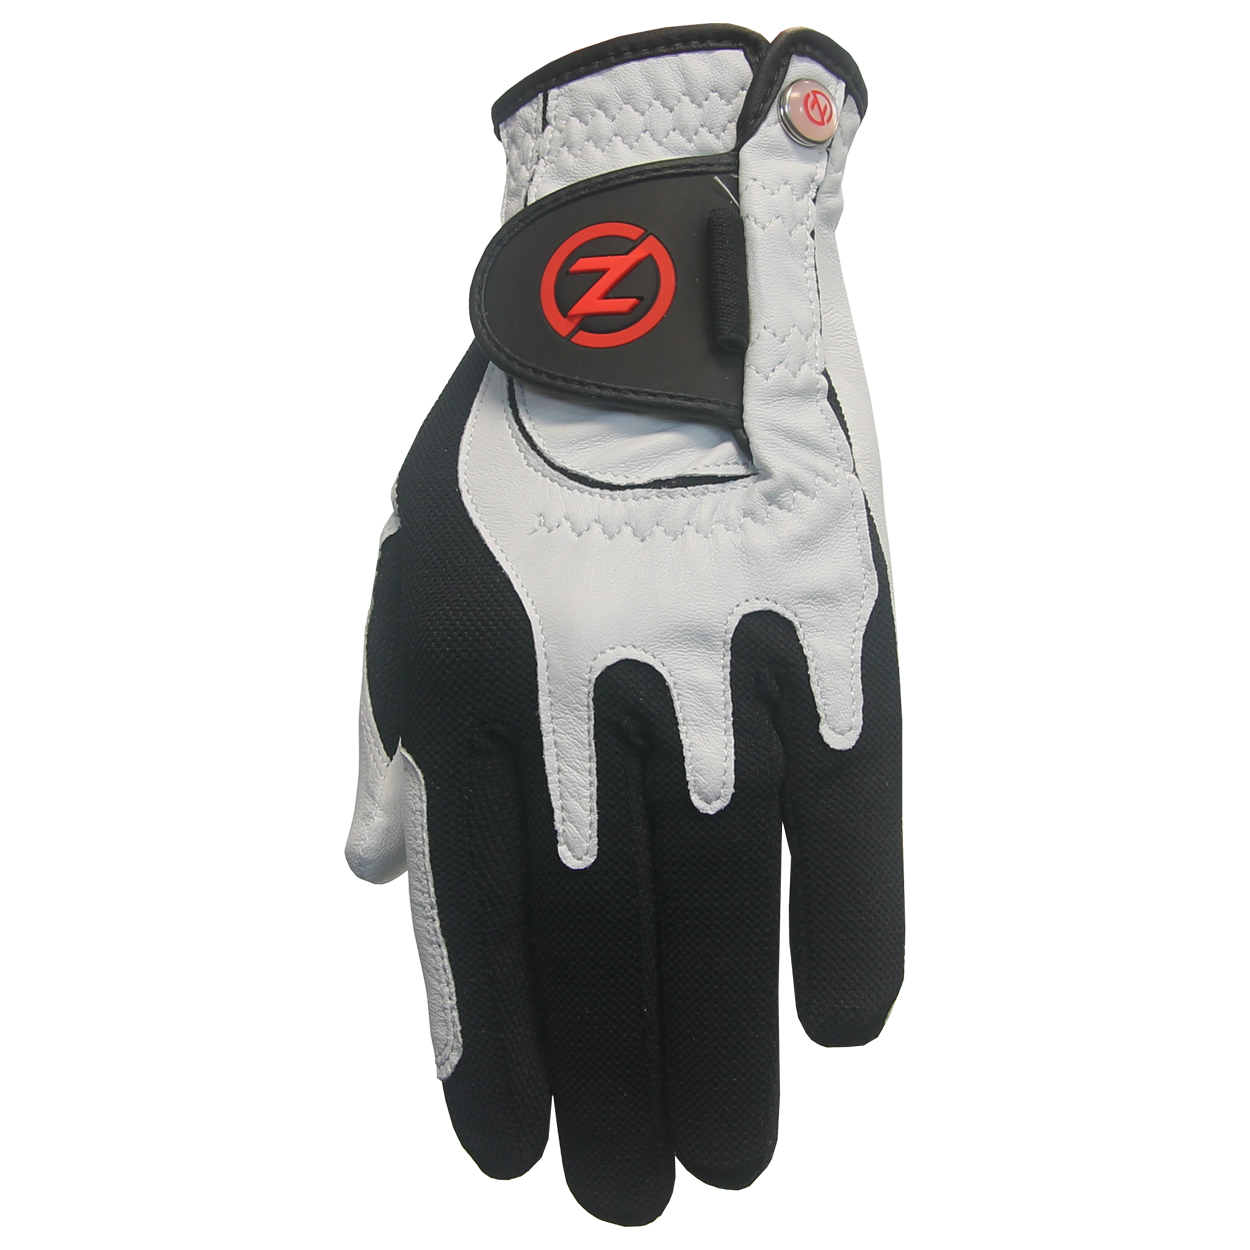 These Zero Friction Premium Golf Gloves feature: Compression Fit Technology allows for universal fit design so one-size-fits most in just one glove. Extremely durable cabretta leather palm for unmatched grip. Mesh Lycra back stretches for a snug fit on almost every player. Rubberized pull tab Velcro closure with ball marker.(Includes 2 gloves) Fitting Note: The hand indicated is the hand the glove is worn on. Typically a right-handed golfer wears a left-handed glove, and a left-handed golfer wears a right-handed glove.